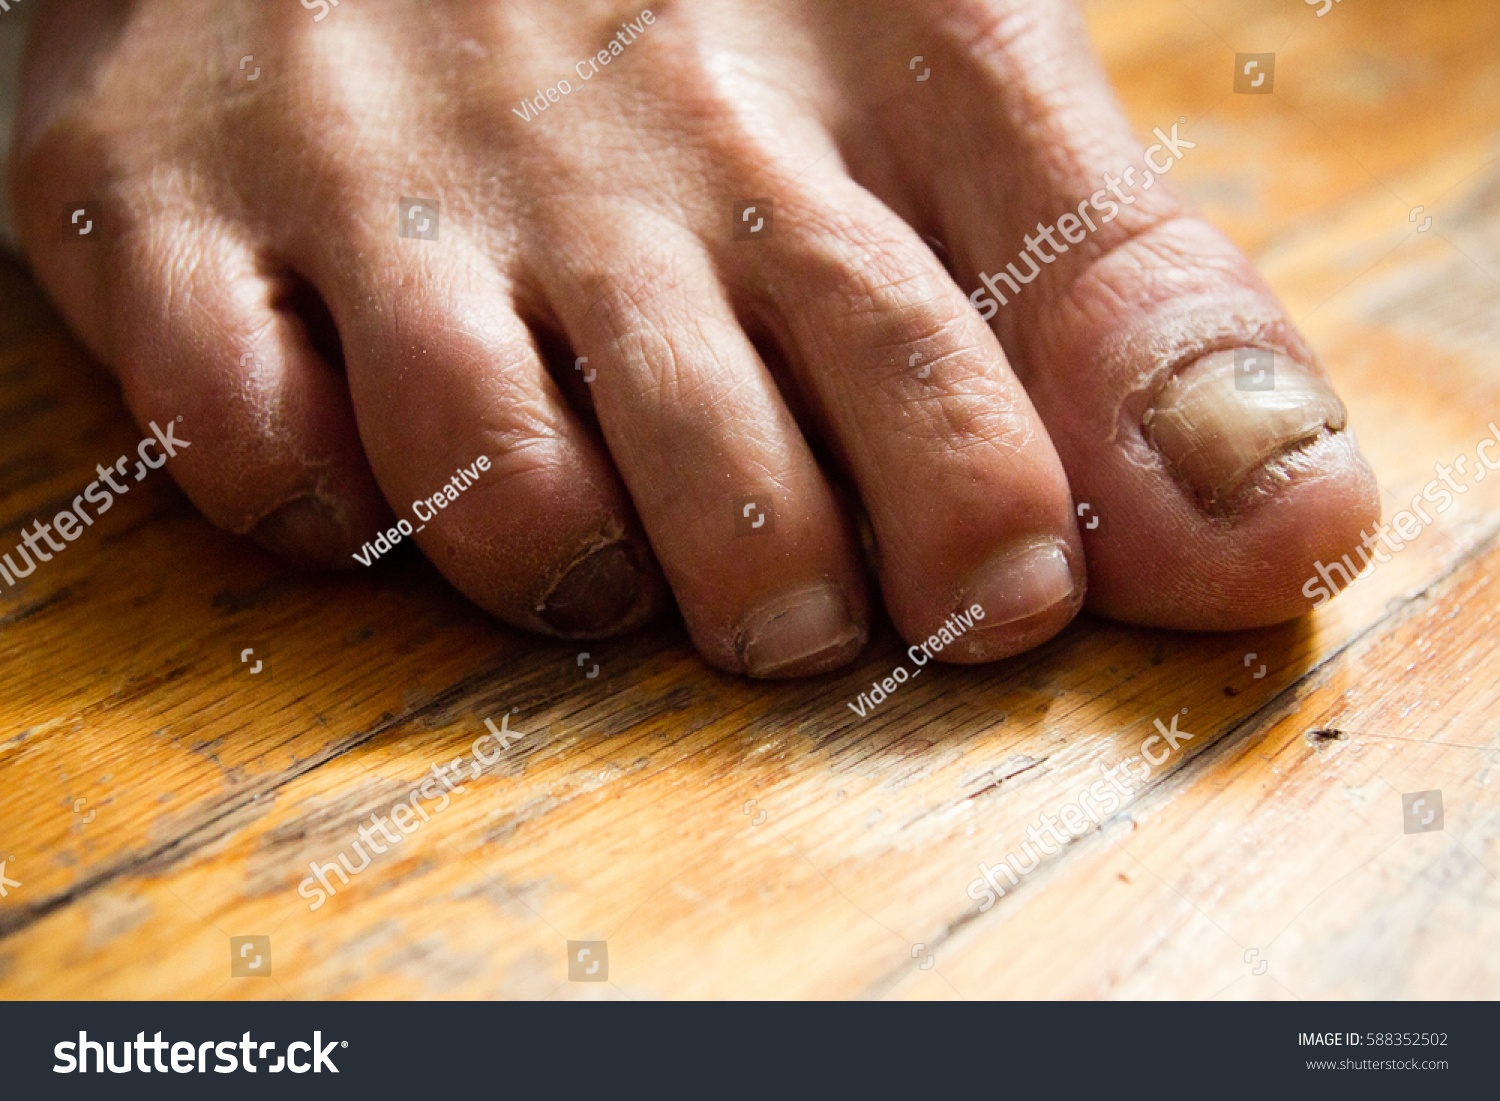 Fungus Infection Dry Crusted Feet Toes Stock Photo (Royalty Free ...